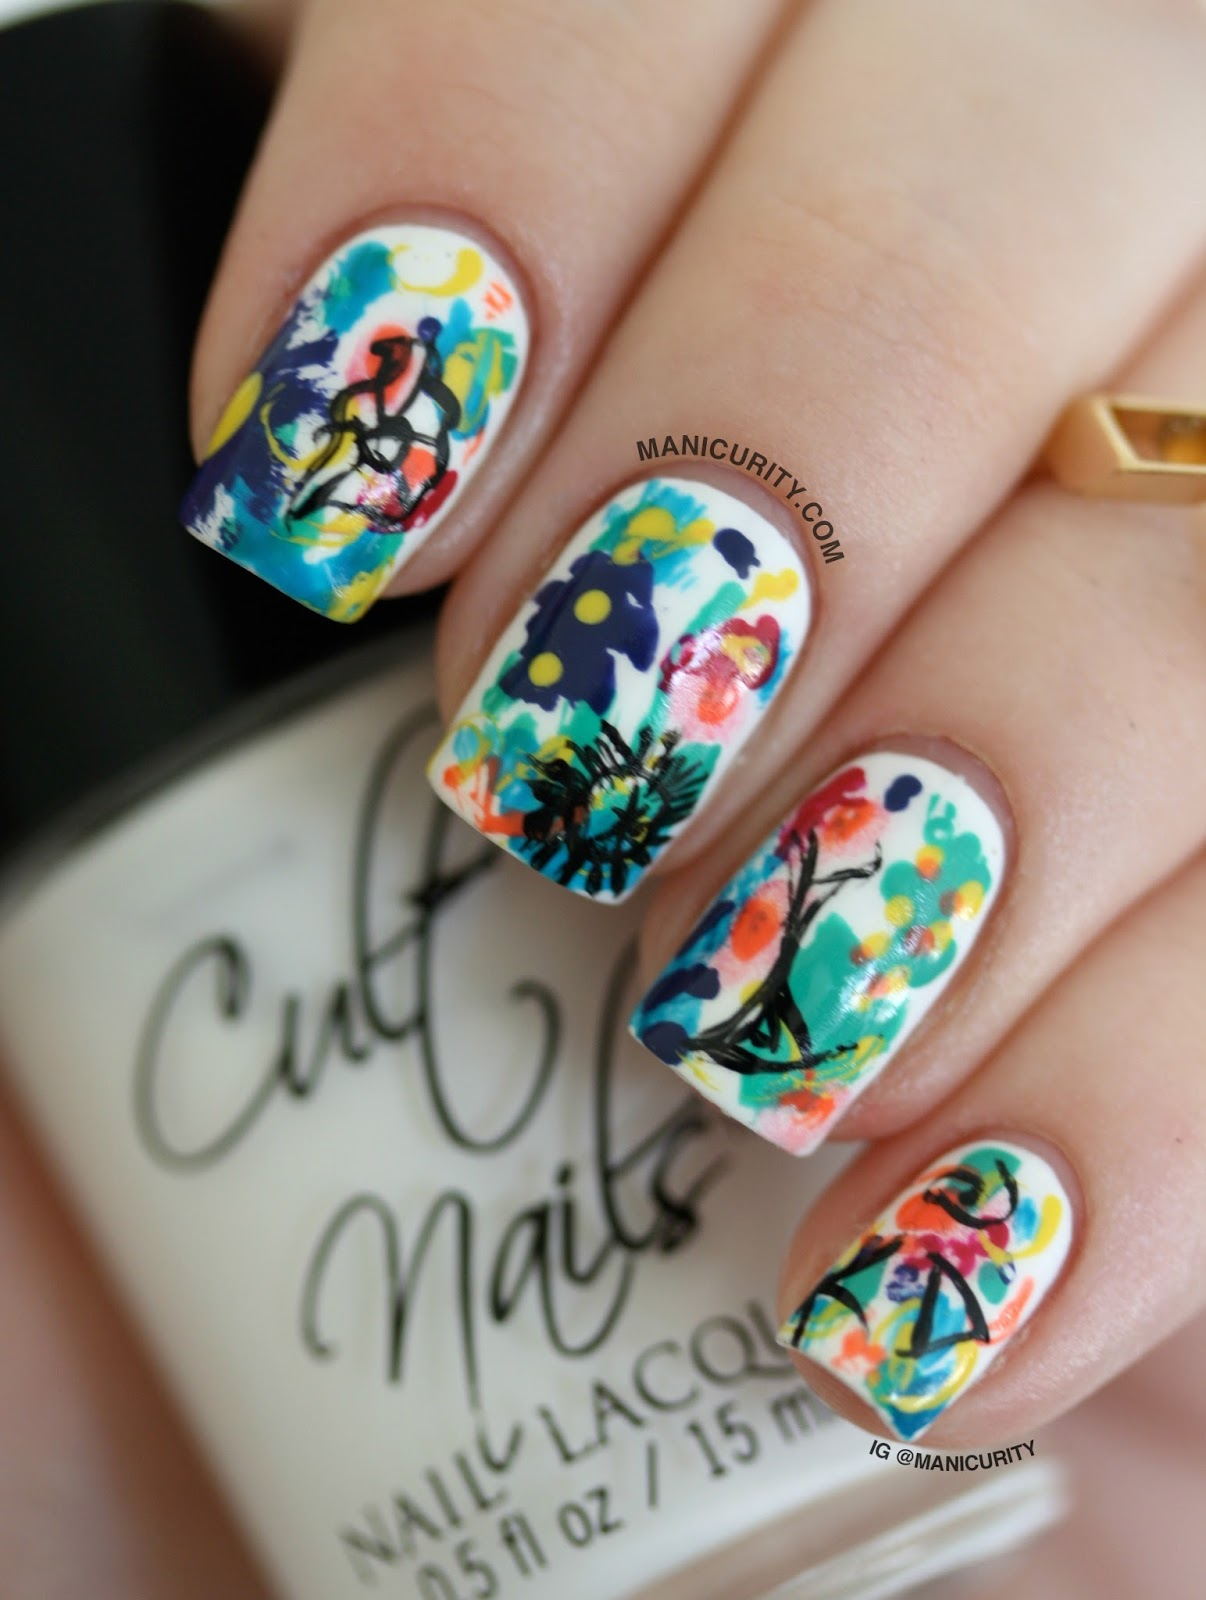 Manicurity | Introducing The Lazy Blogger's 31 Day Challenge with an Impressionist Floral Freehand Mani!